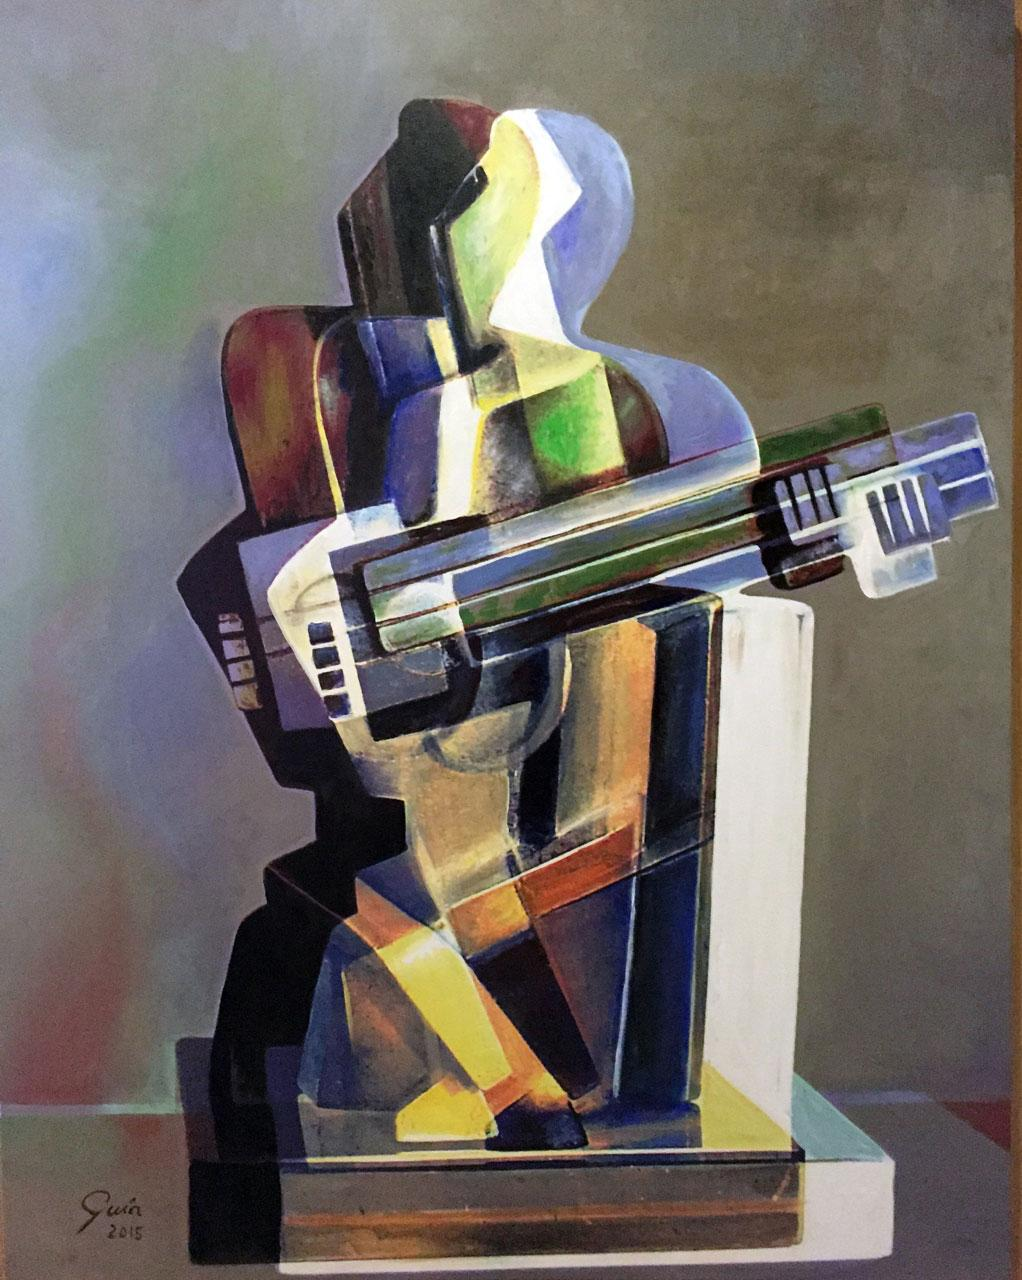 Tridimensional Cubism Harlequin - Miguel Guía Cubist Oil Paint on Canvas